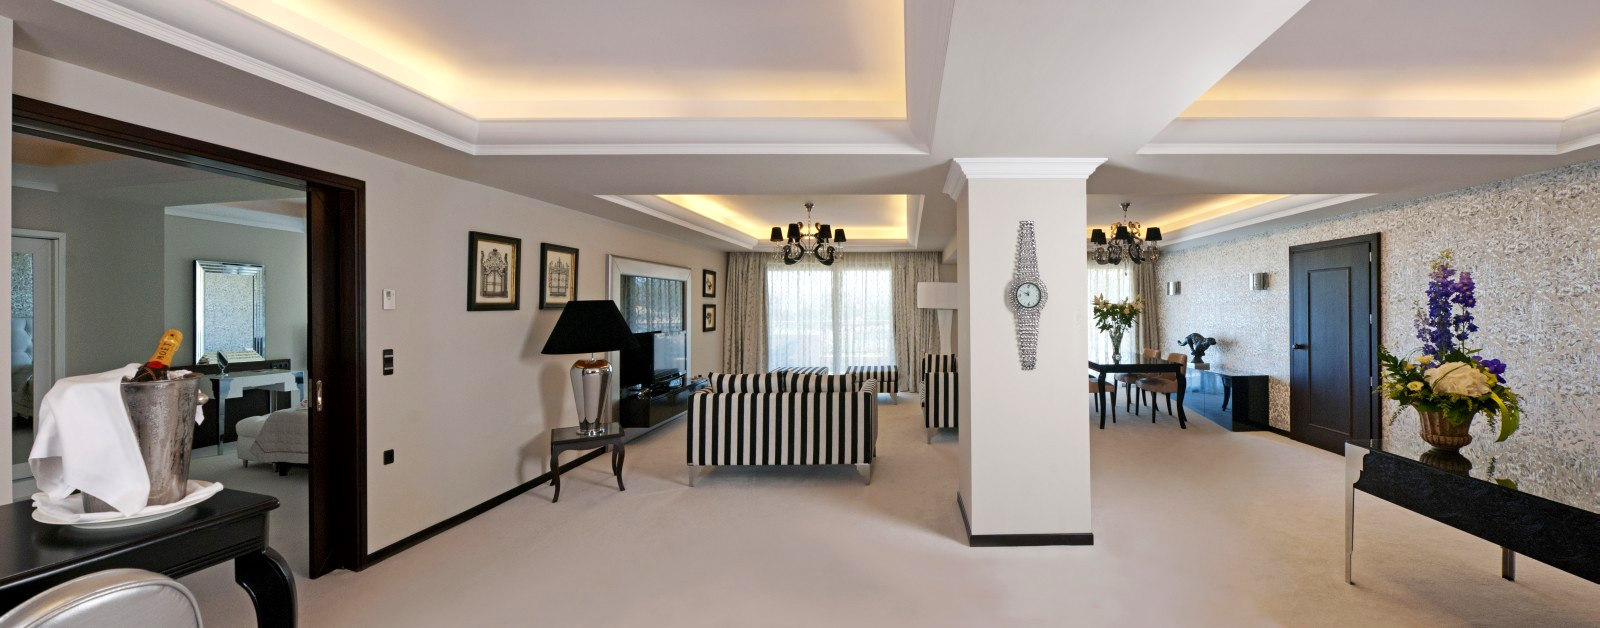 PRESIDENTIAL_SUITE_PANORAMIC_VIEW